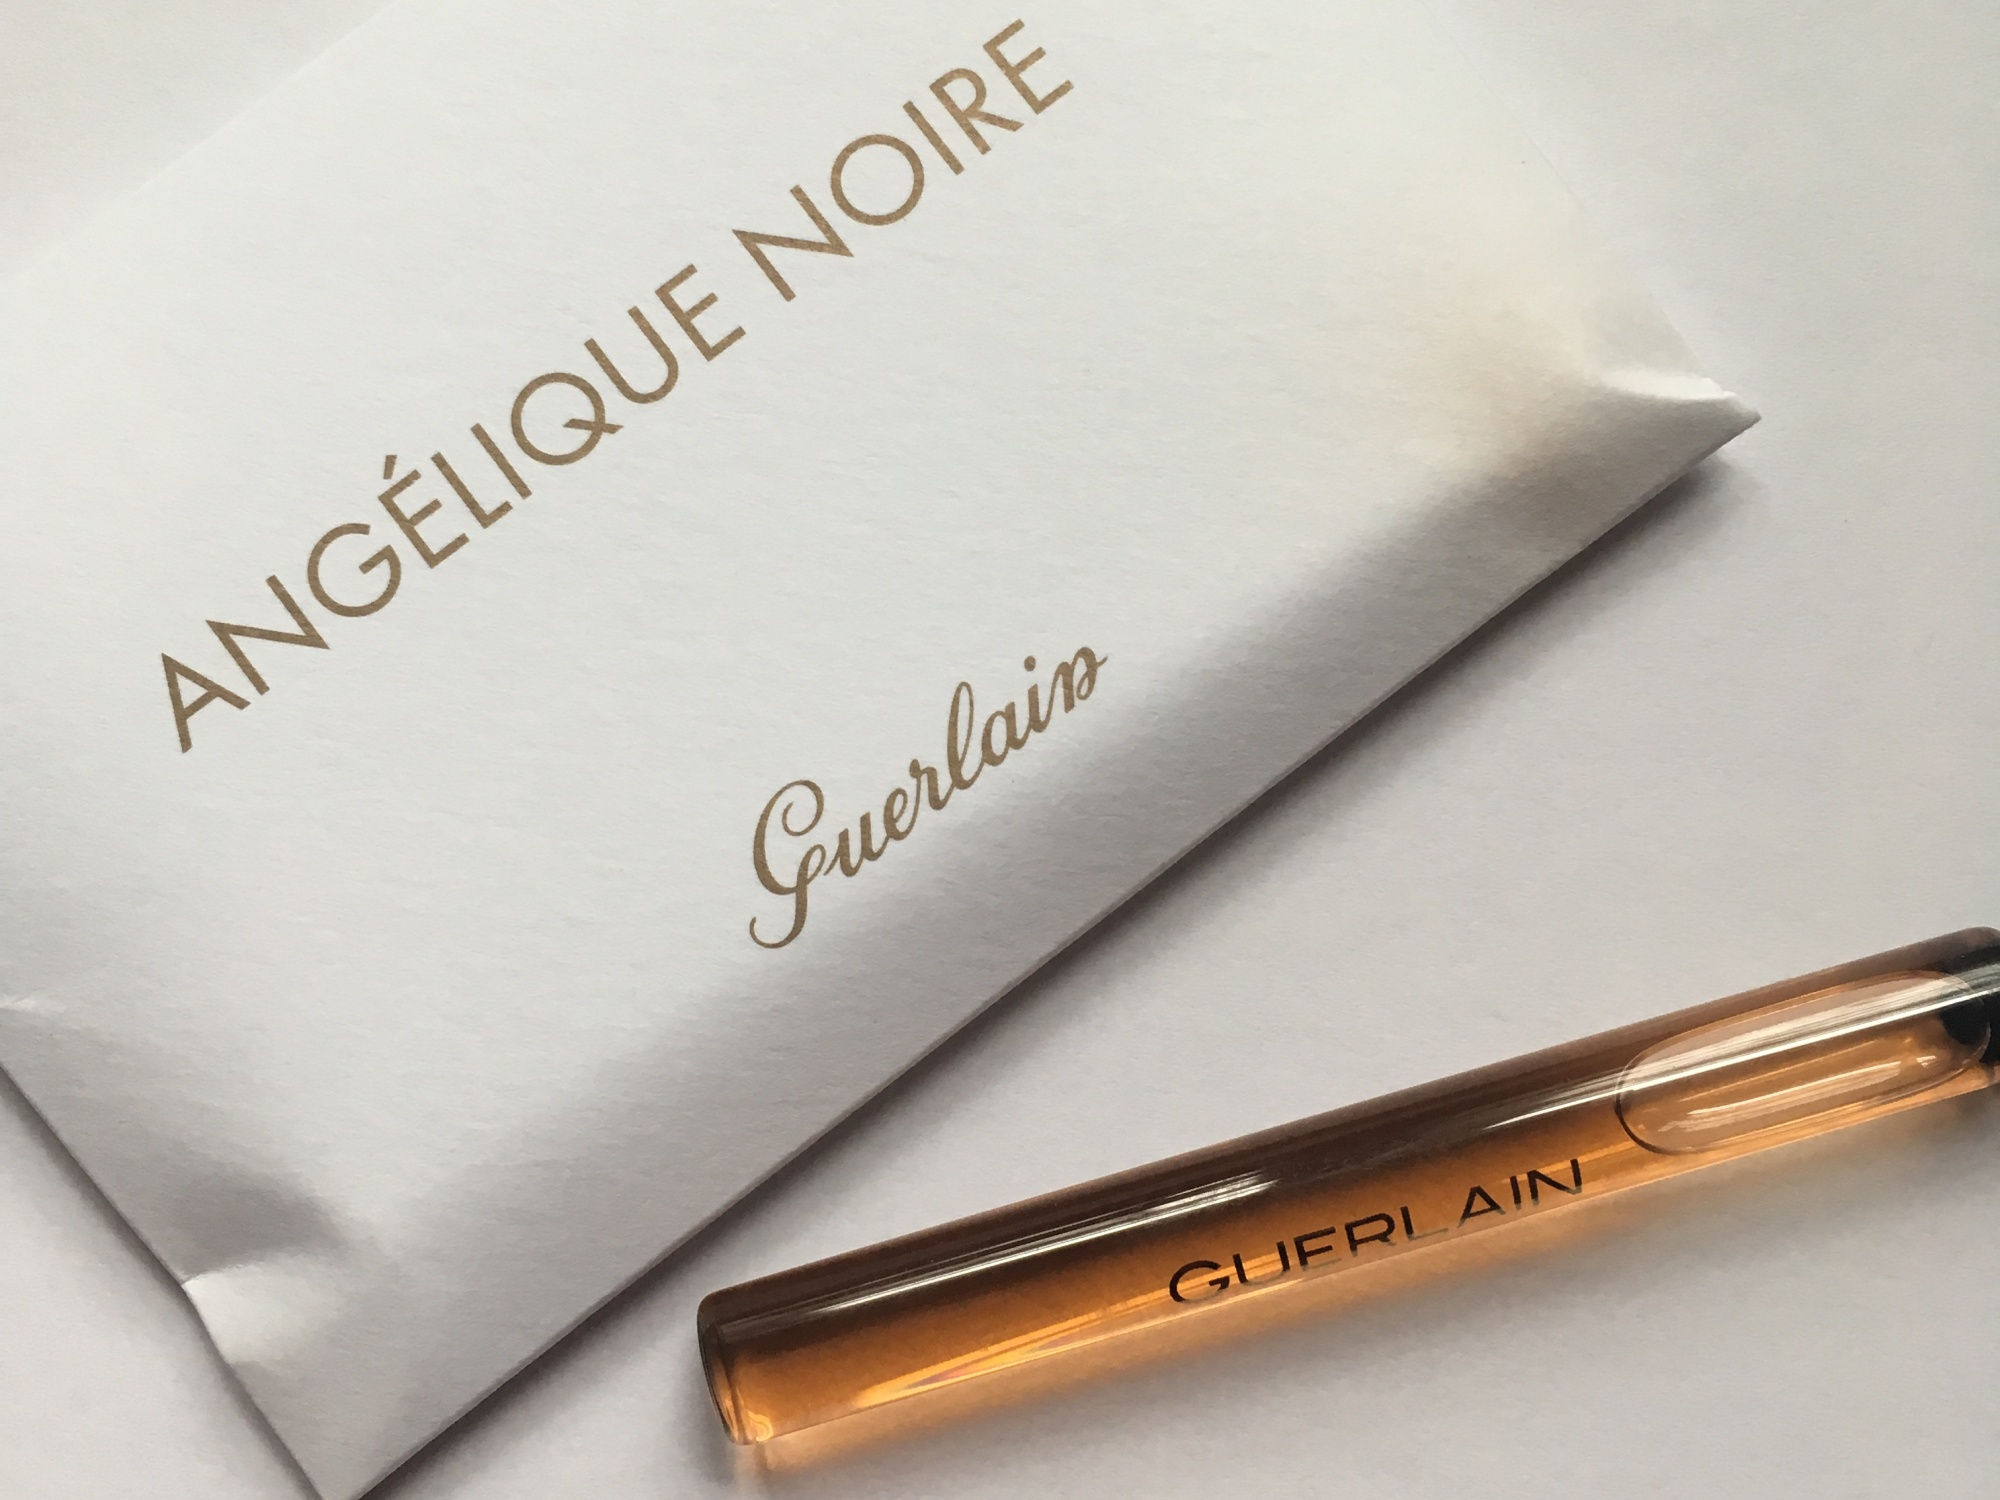 Angelique Noire by Larkin Small & Guerlain